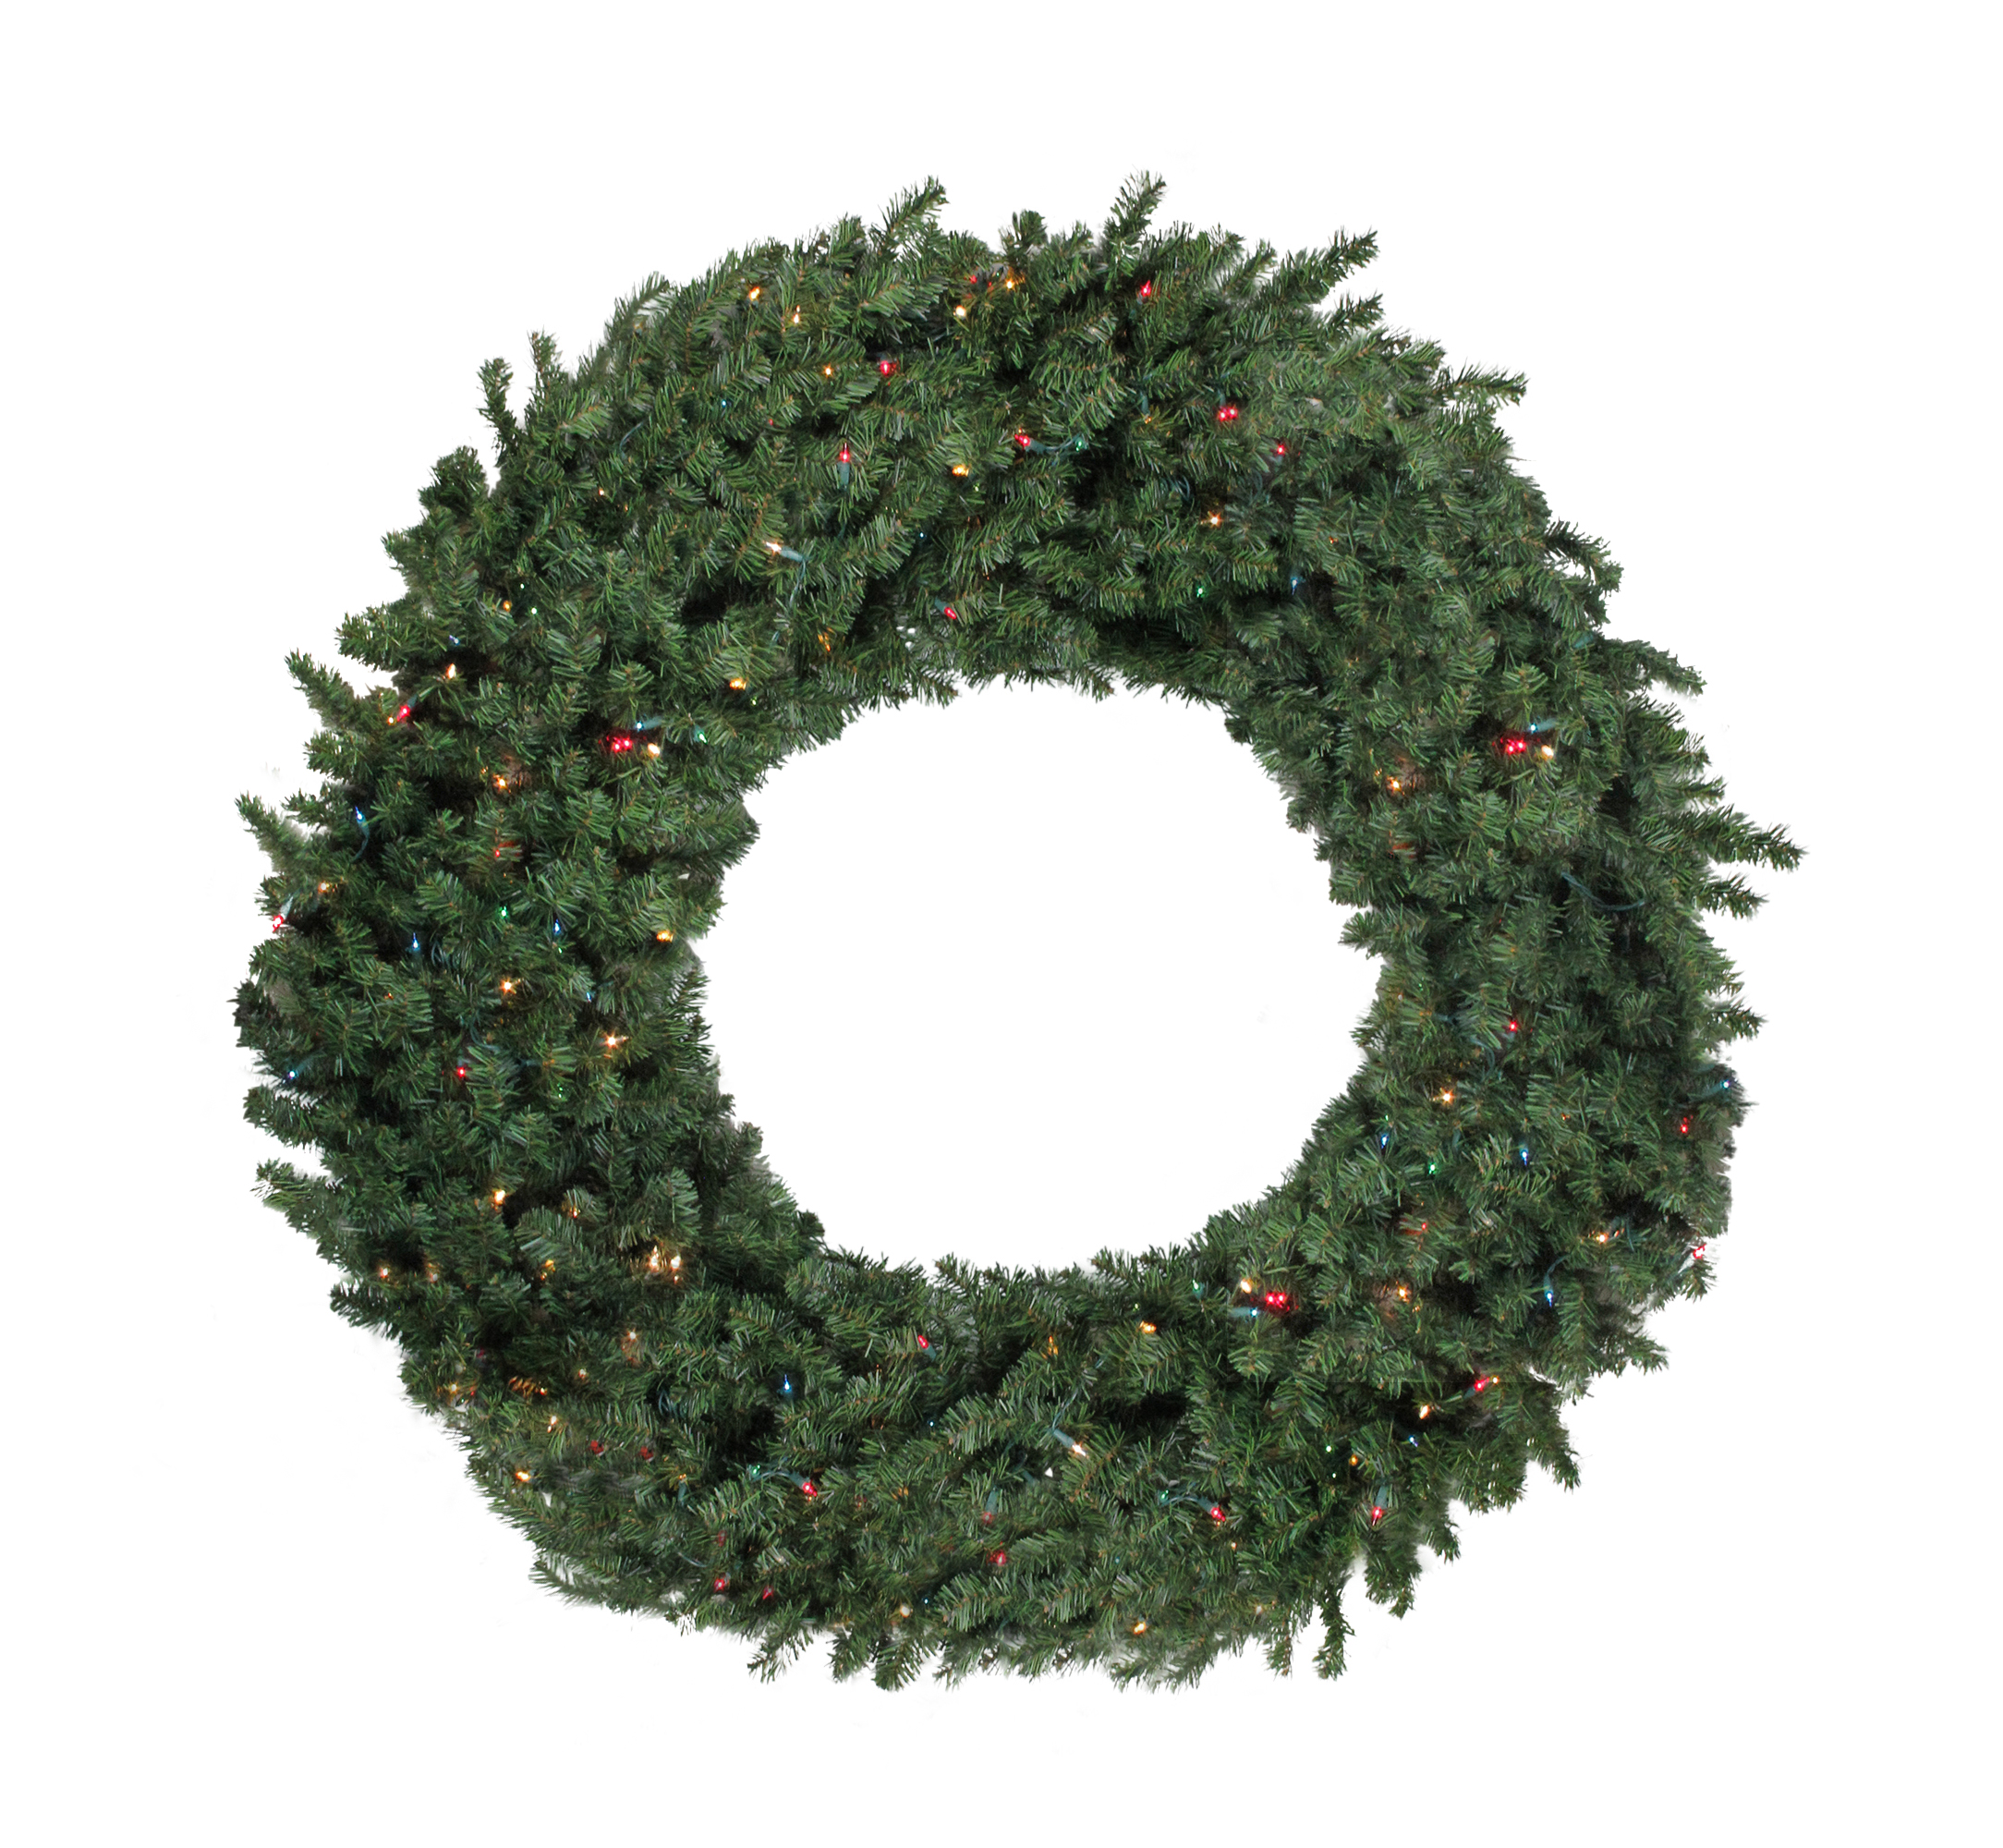 72 pre lit commercial canadian pine artificial christmas wreath multi lights - Commercial Christmas Decorations Canada